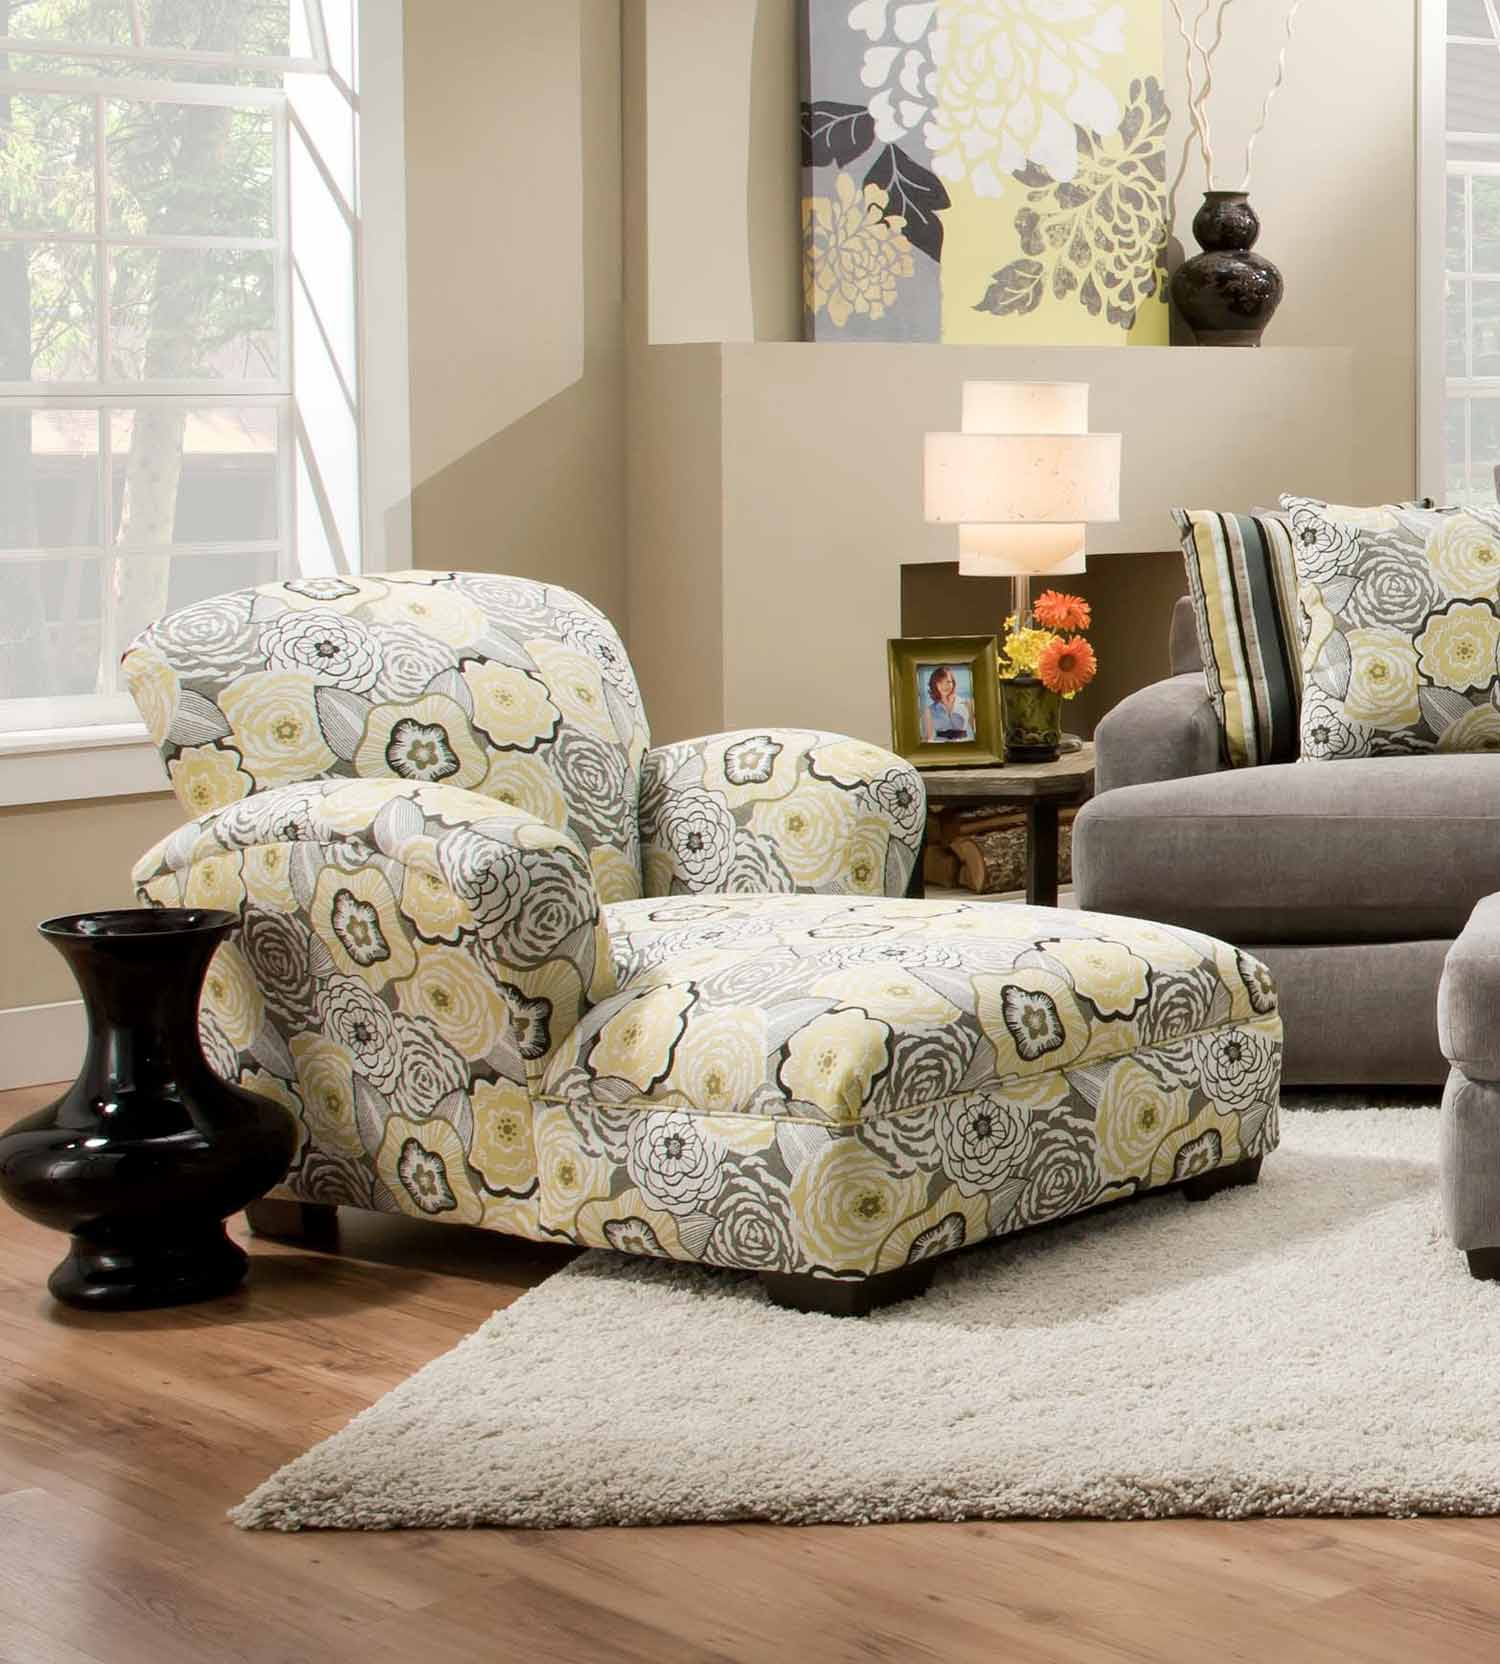 Chelsea home pansy chaise lounge ava yellowgray for Ava chaise lounge